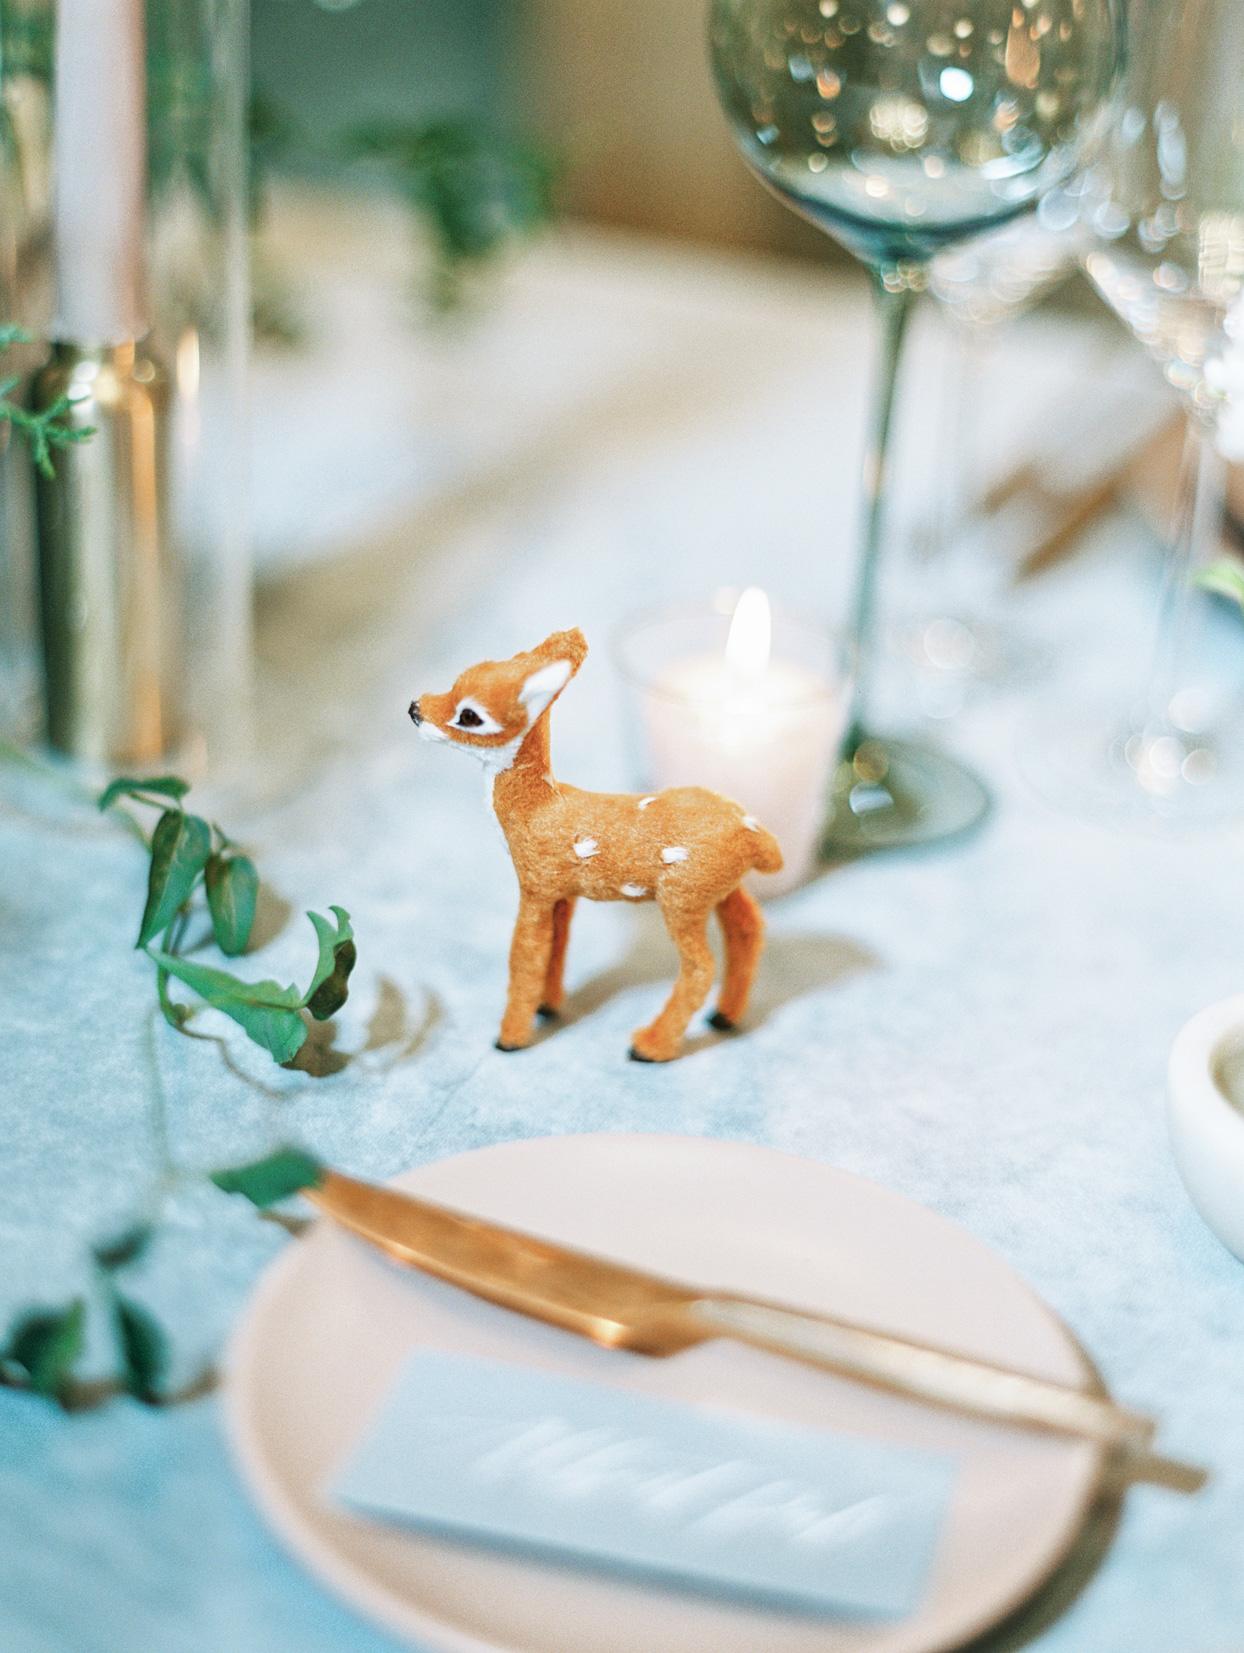 little fawn figurine on reception table